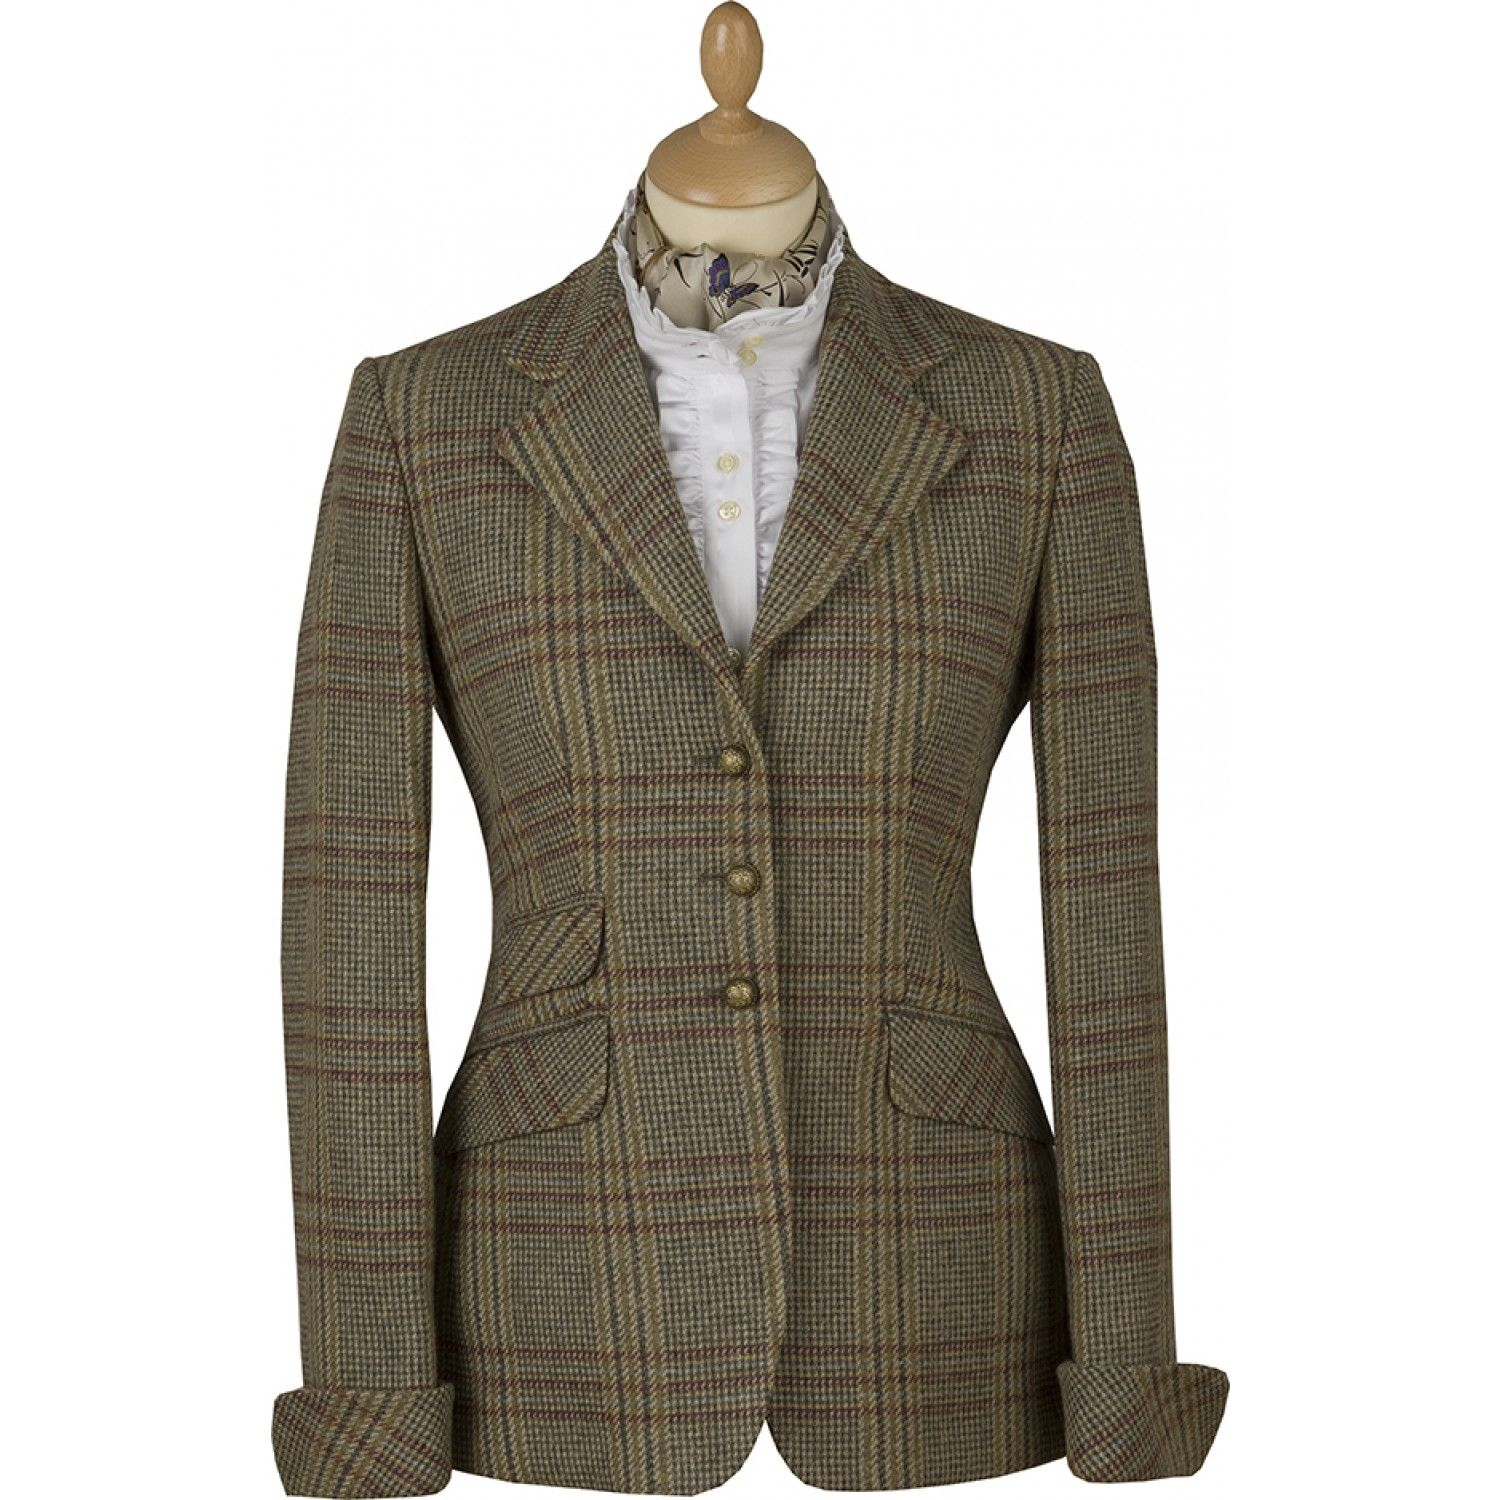 Fold Cuff Tweed Ladies Jacket. Love this cut and style ...